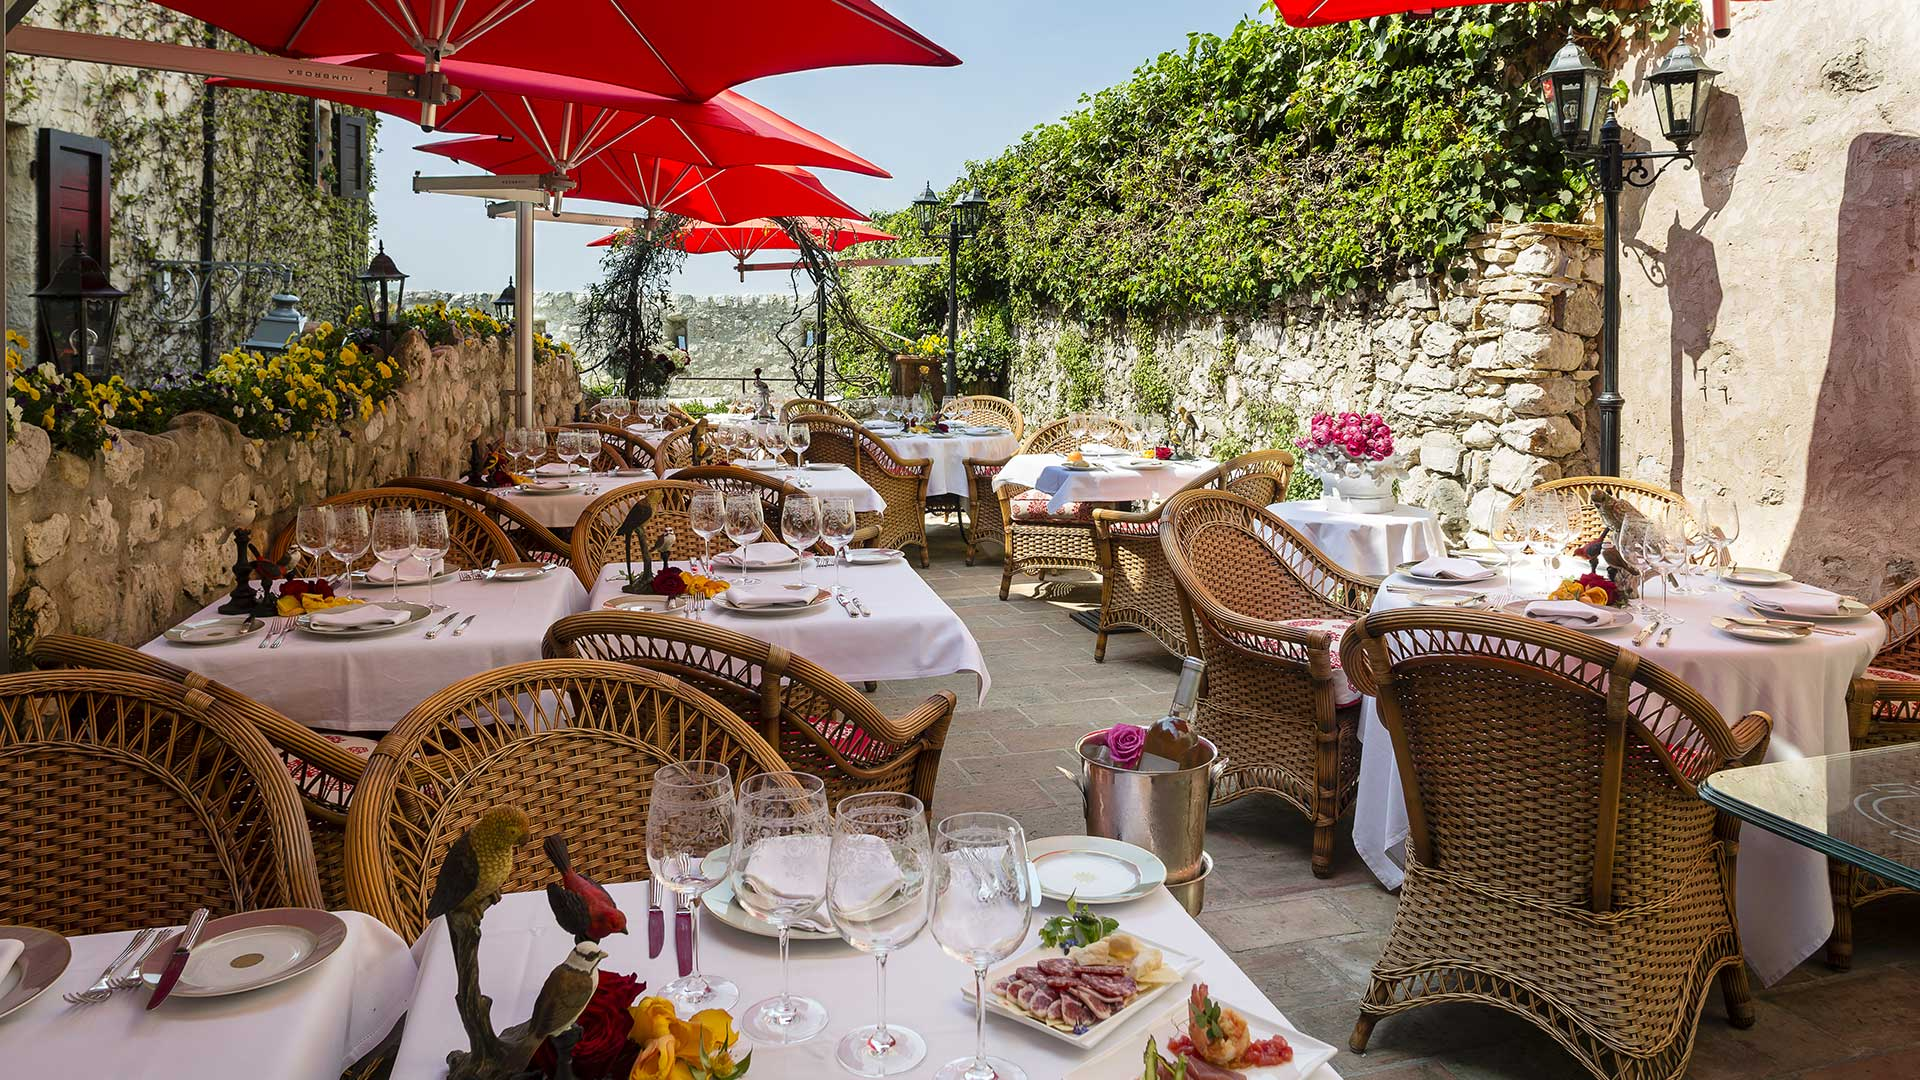 Hotel Le Saint Paul terrace restaurant Provence